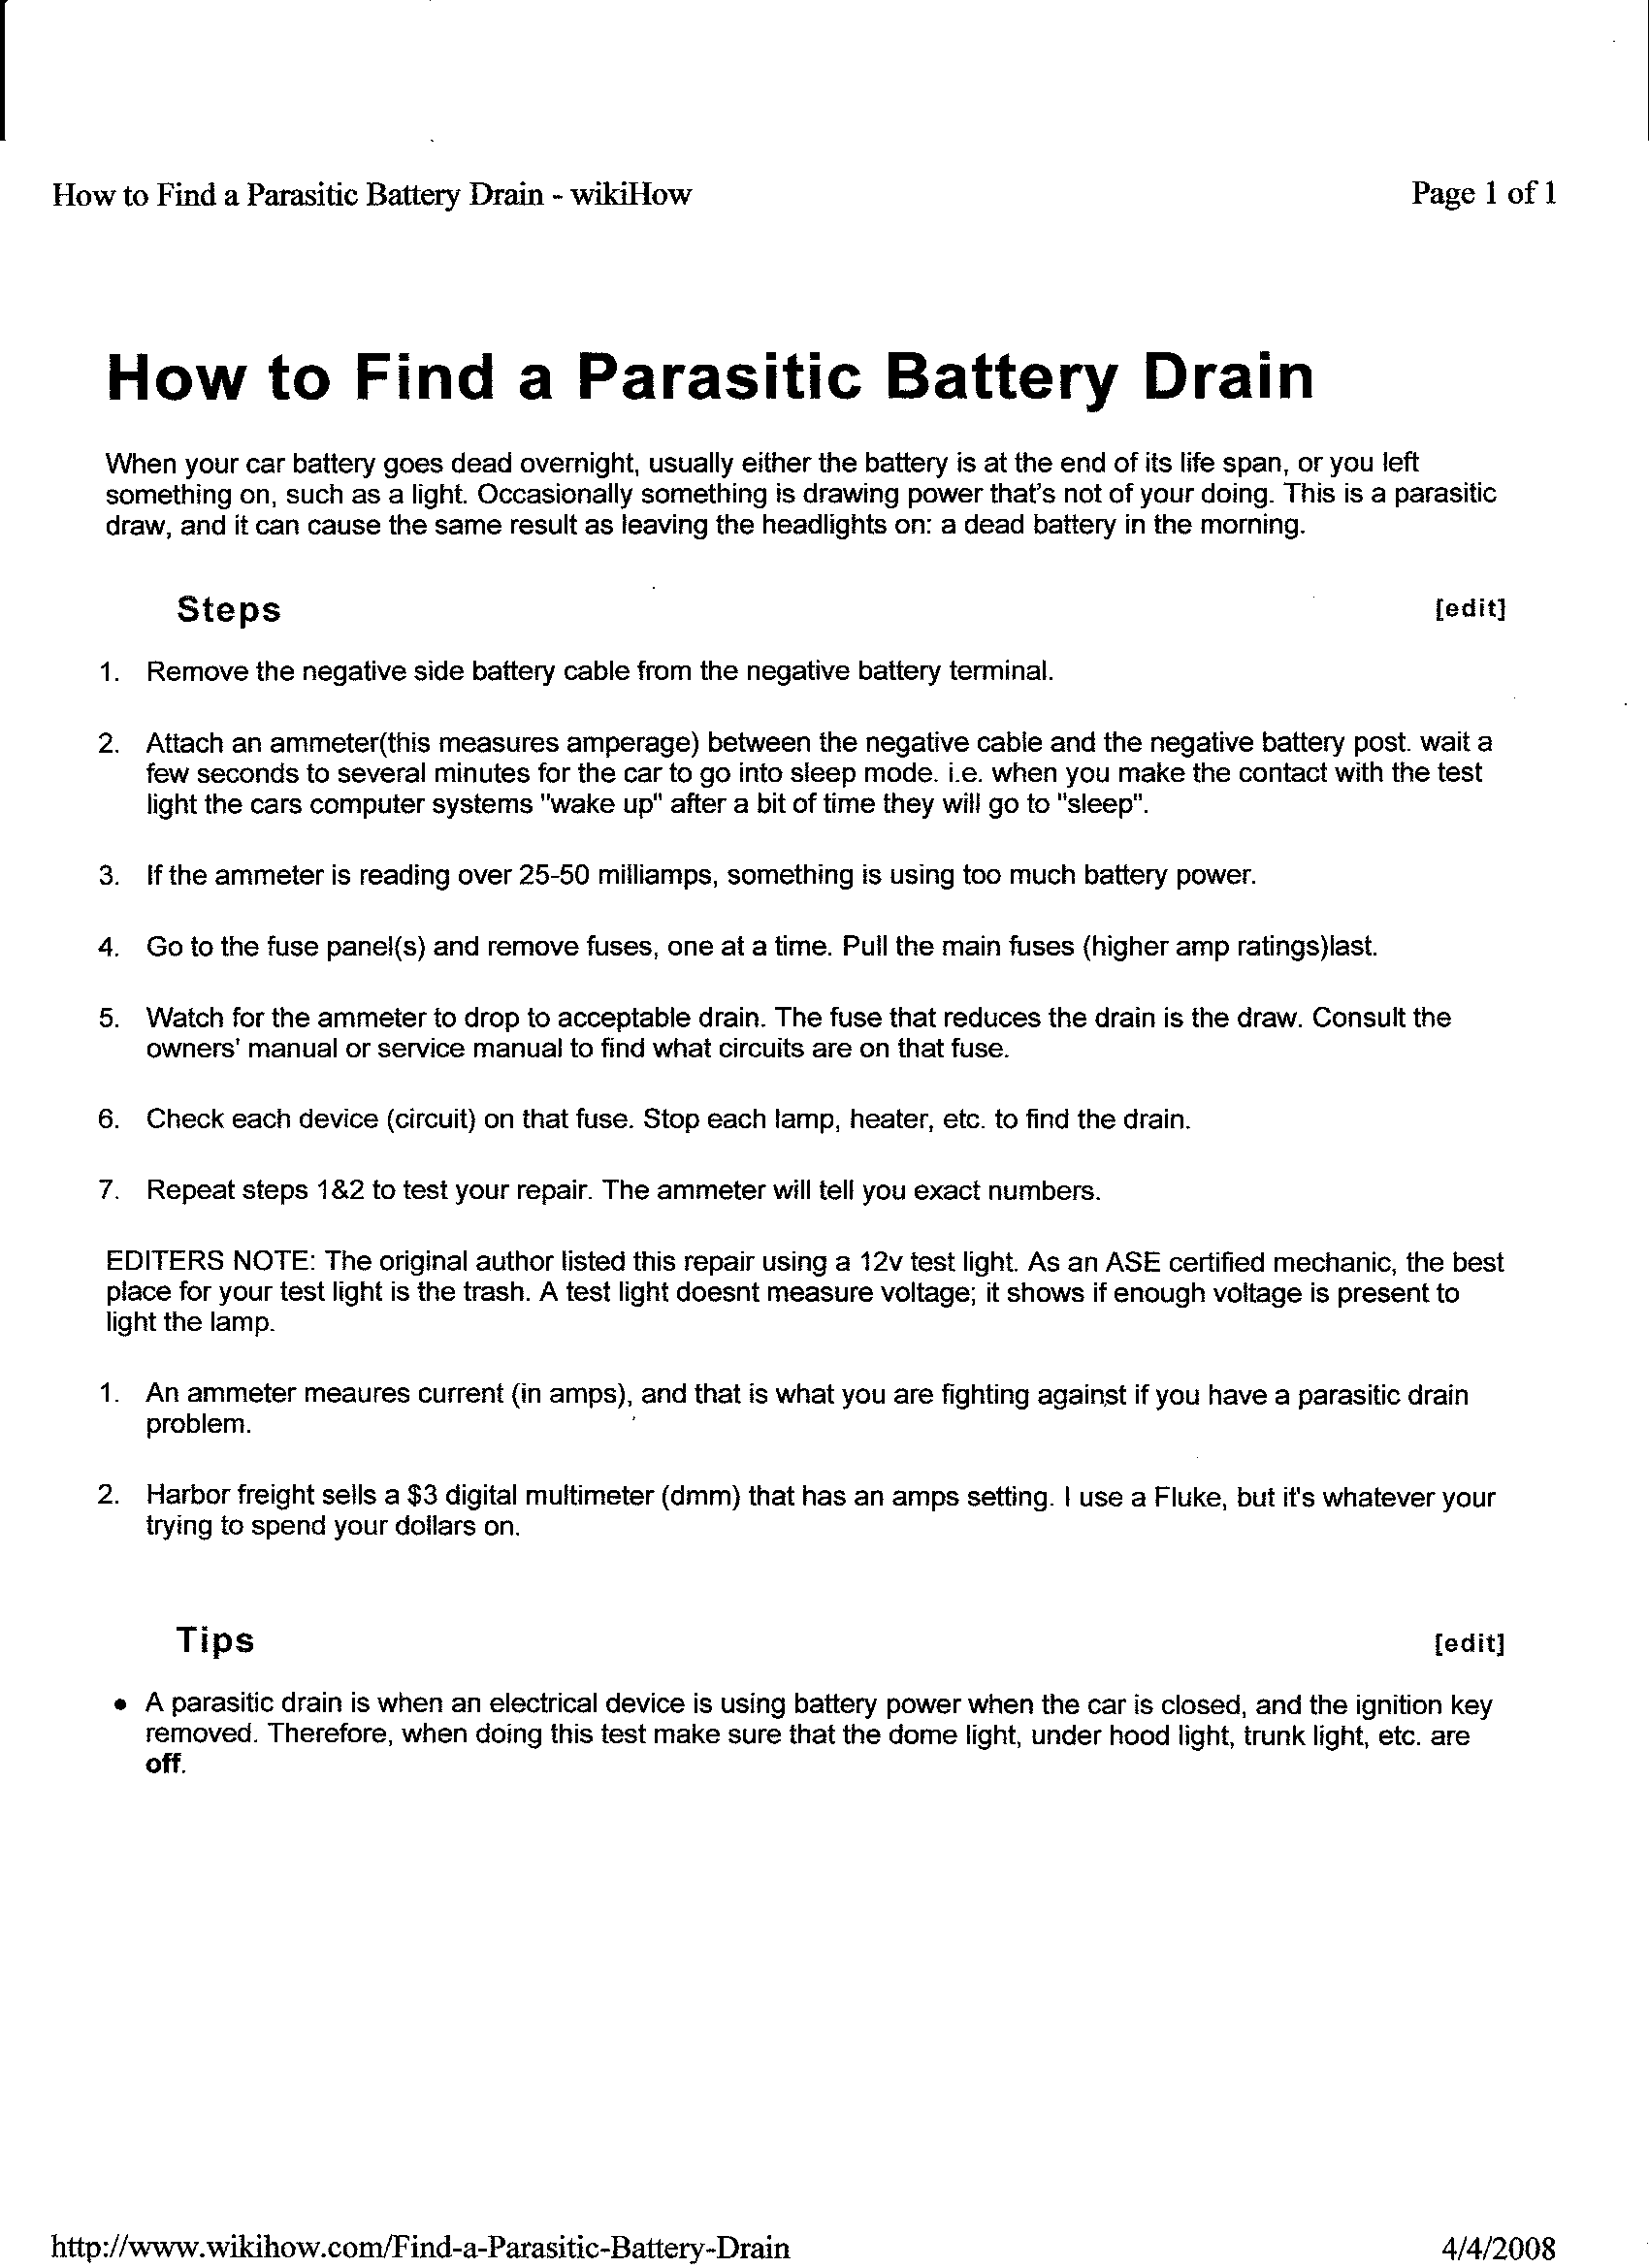 How To Check For Parasitic Draw Pulsar Fuse Box Find Shorted Circuits And Bench Test Equipment Quickly Safely 9001 Master Kit Provides 5 Additional